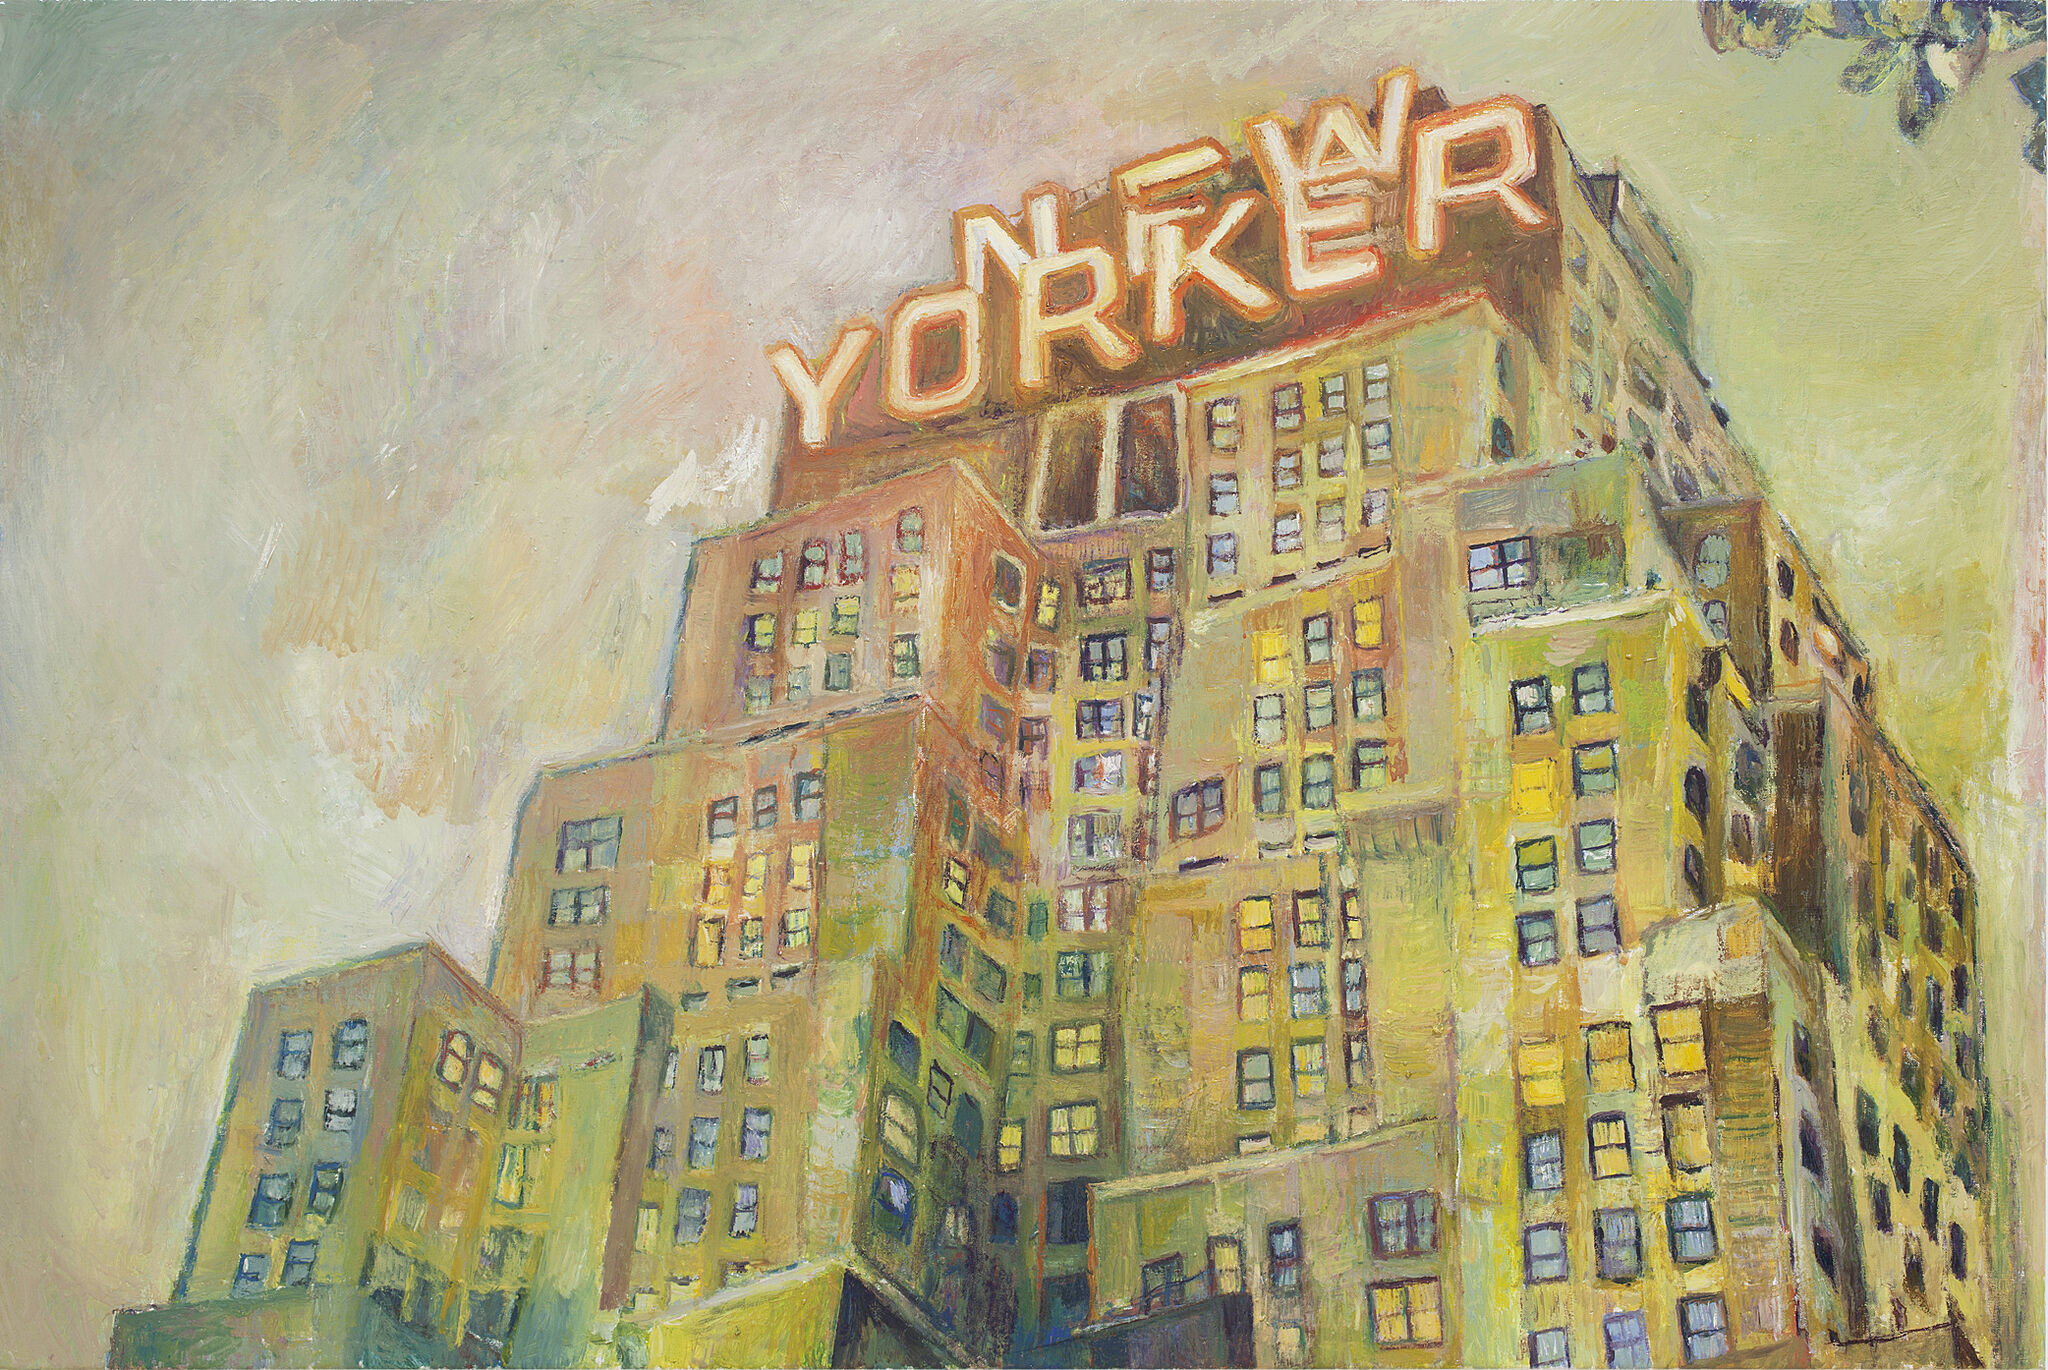 A painting of a building with a neon sign saying New Yorker.